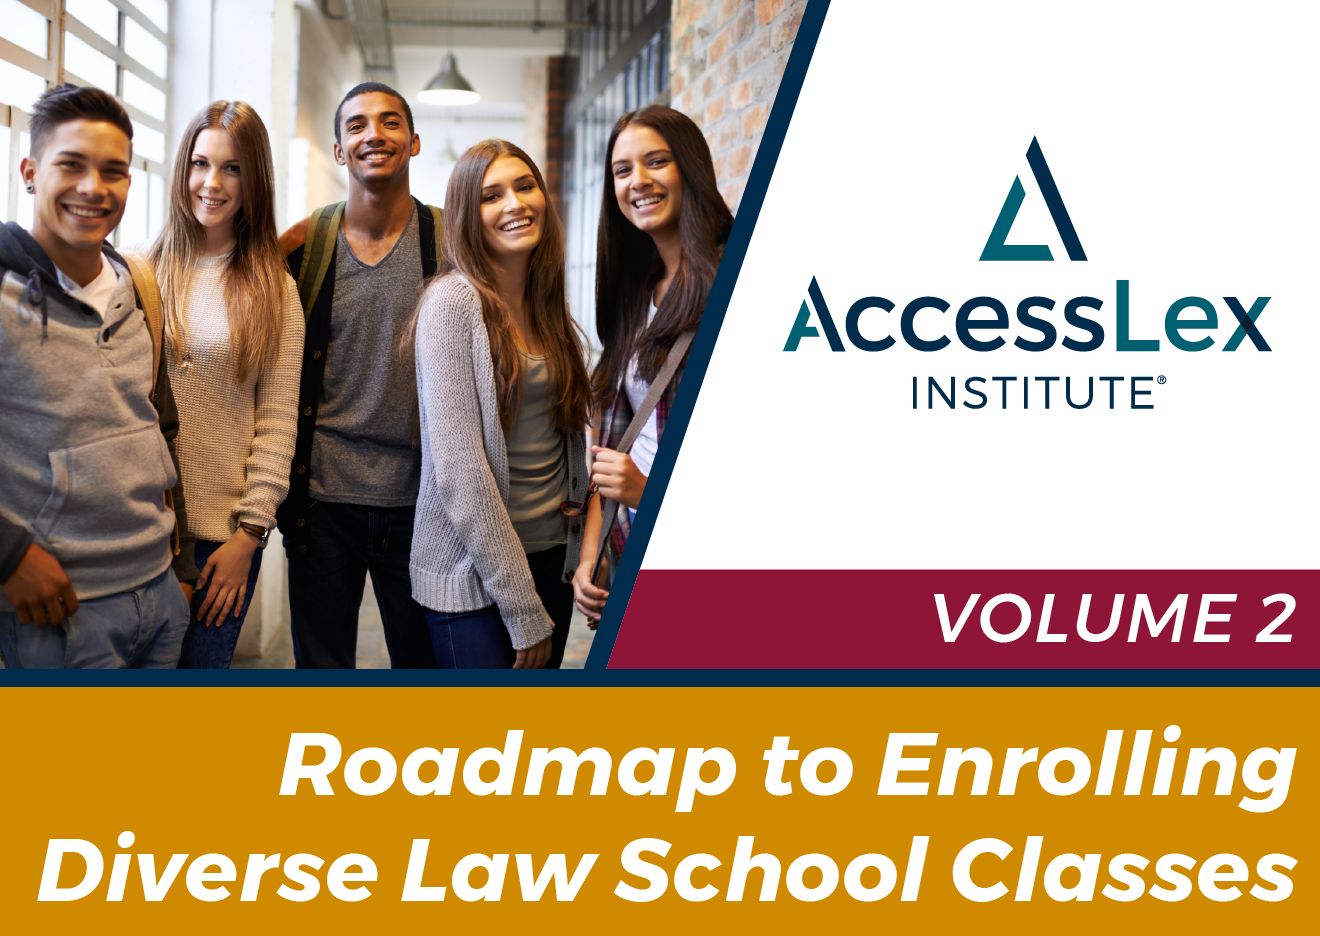 Roadmap to Enrolling Diverse Law School Classes Volume 2 Preview Image